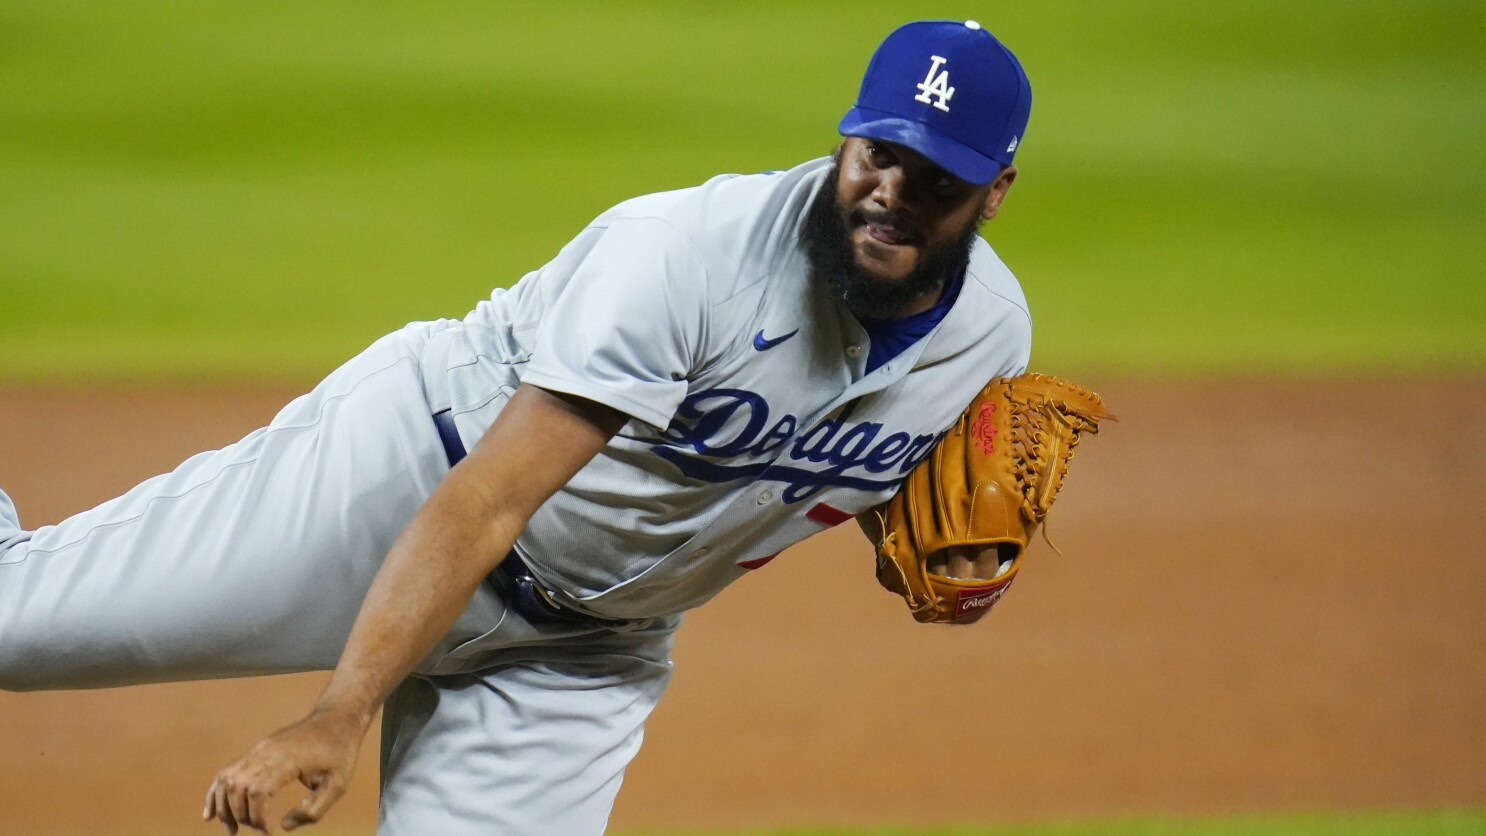 Dodgers closer Kenley Jansen's role is on shaky ground - Los Angeles Times